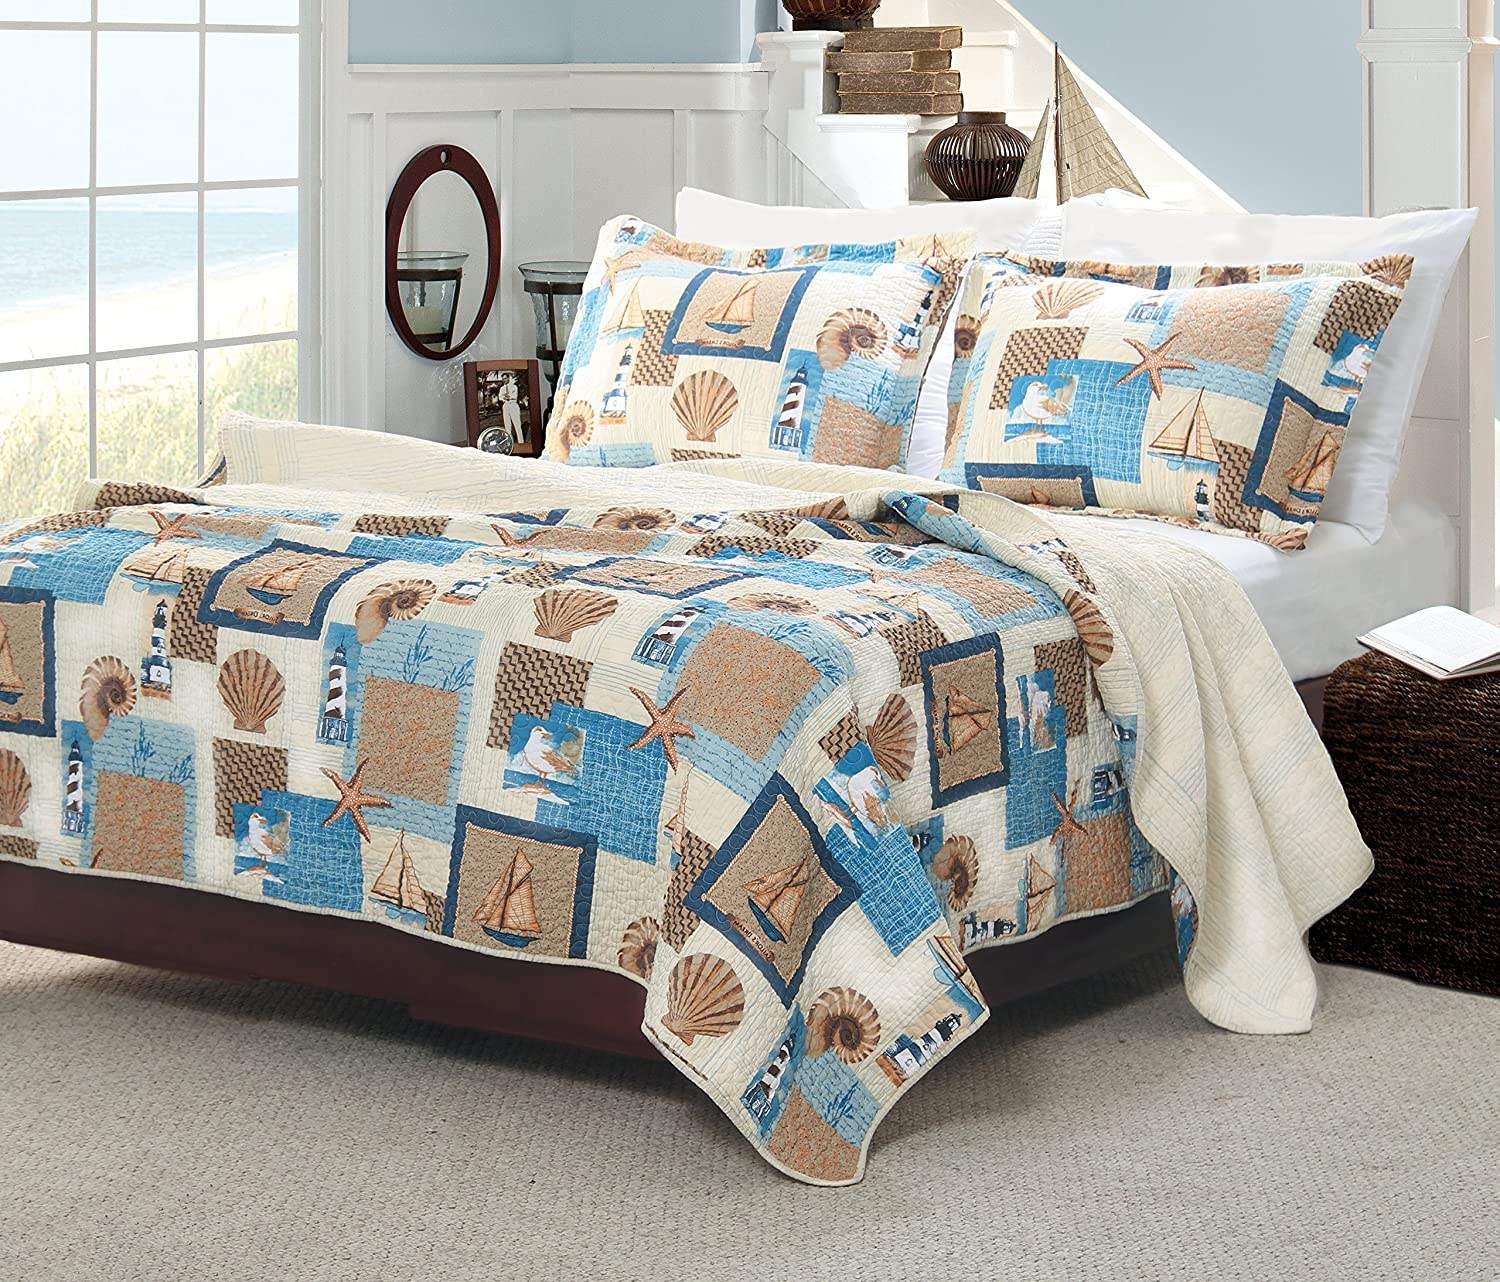 Greenland Home 3-Piece Beachcomber Quilt Set, Full/Queen, Multi